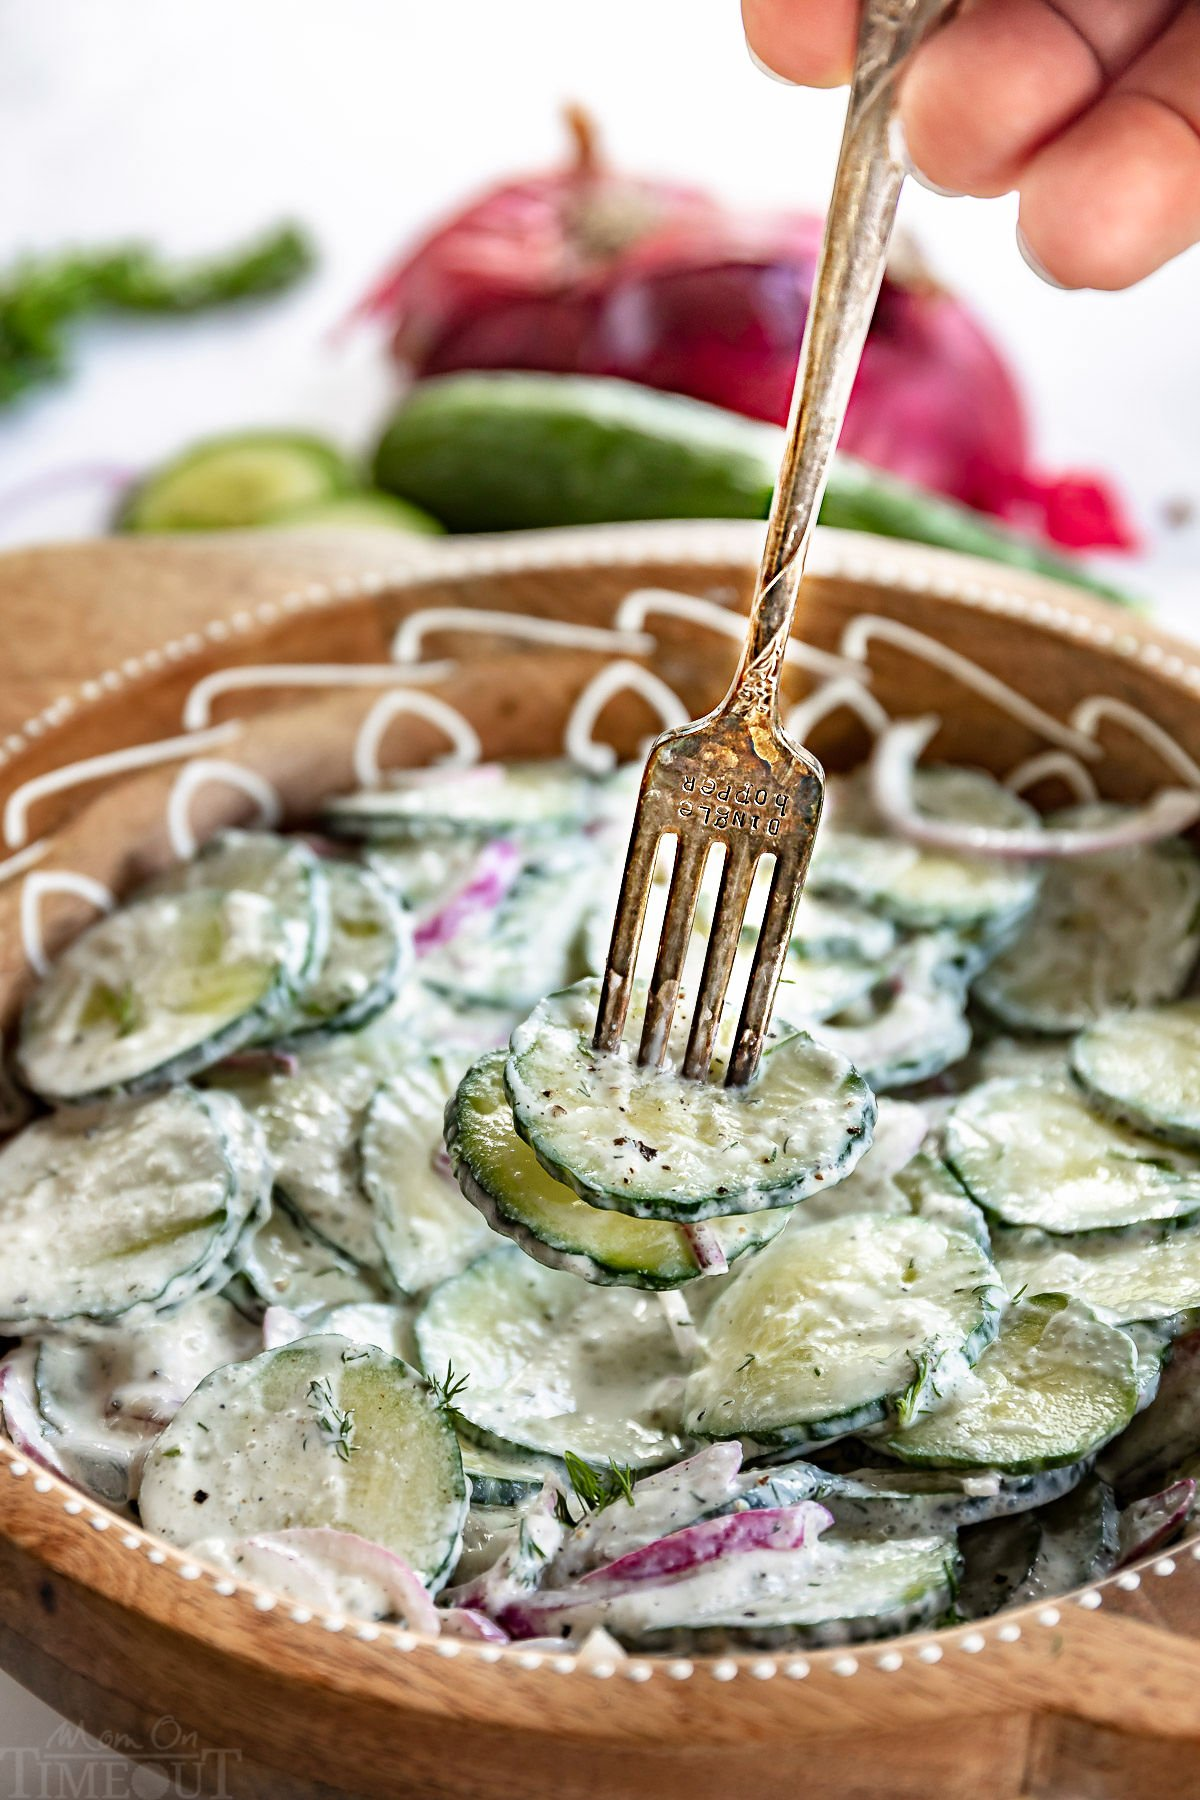 cucumber salad in large bowl with fork with two slices of cucumber on it